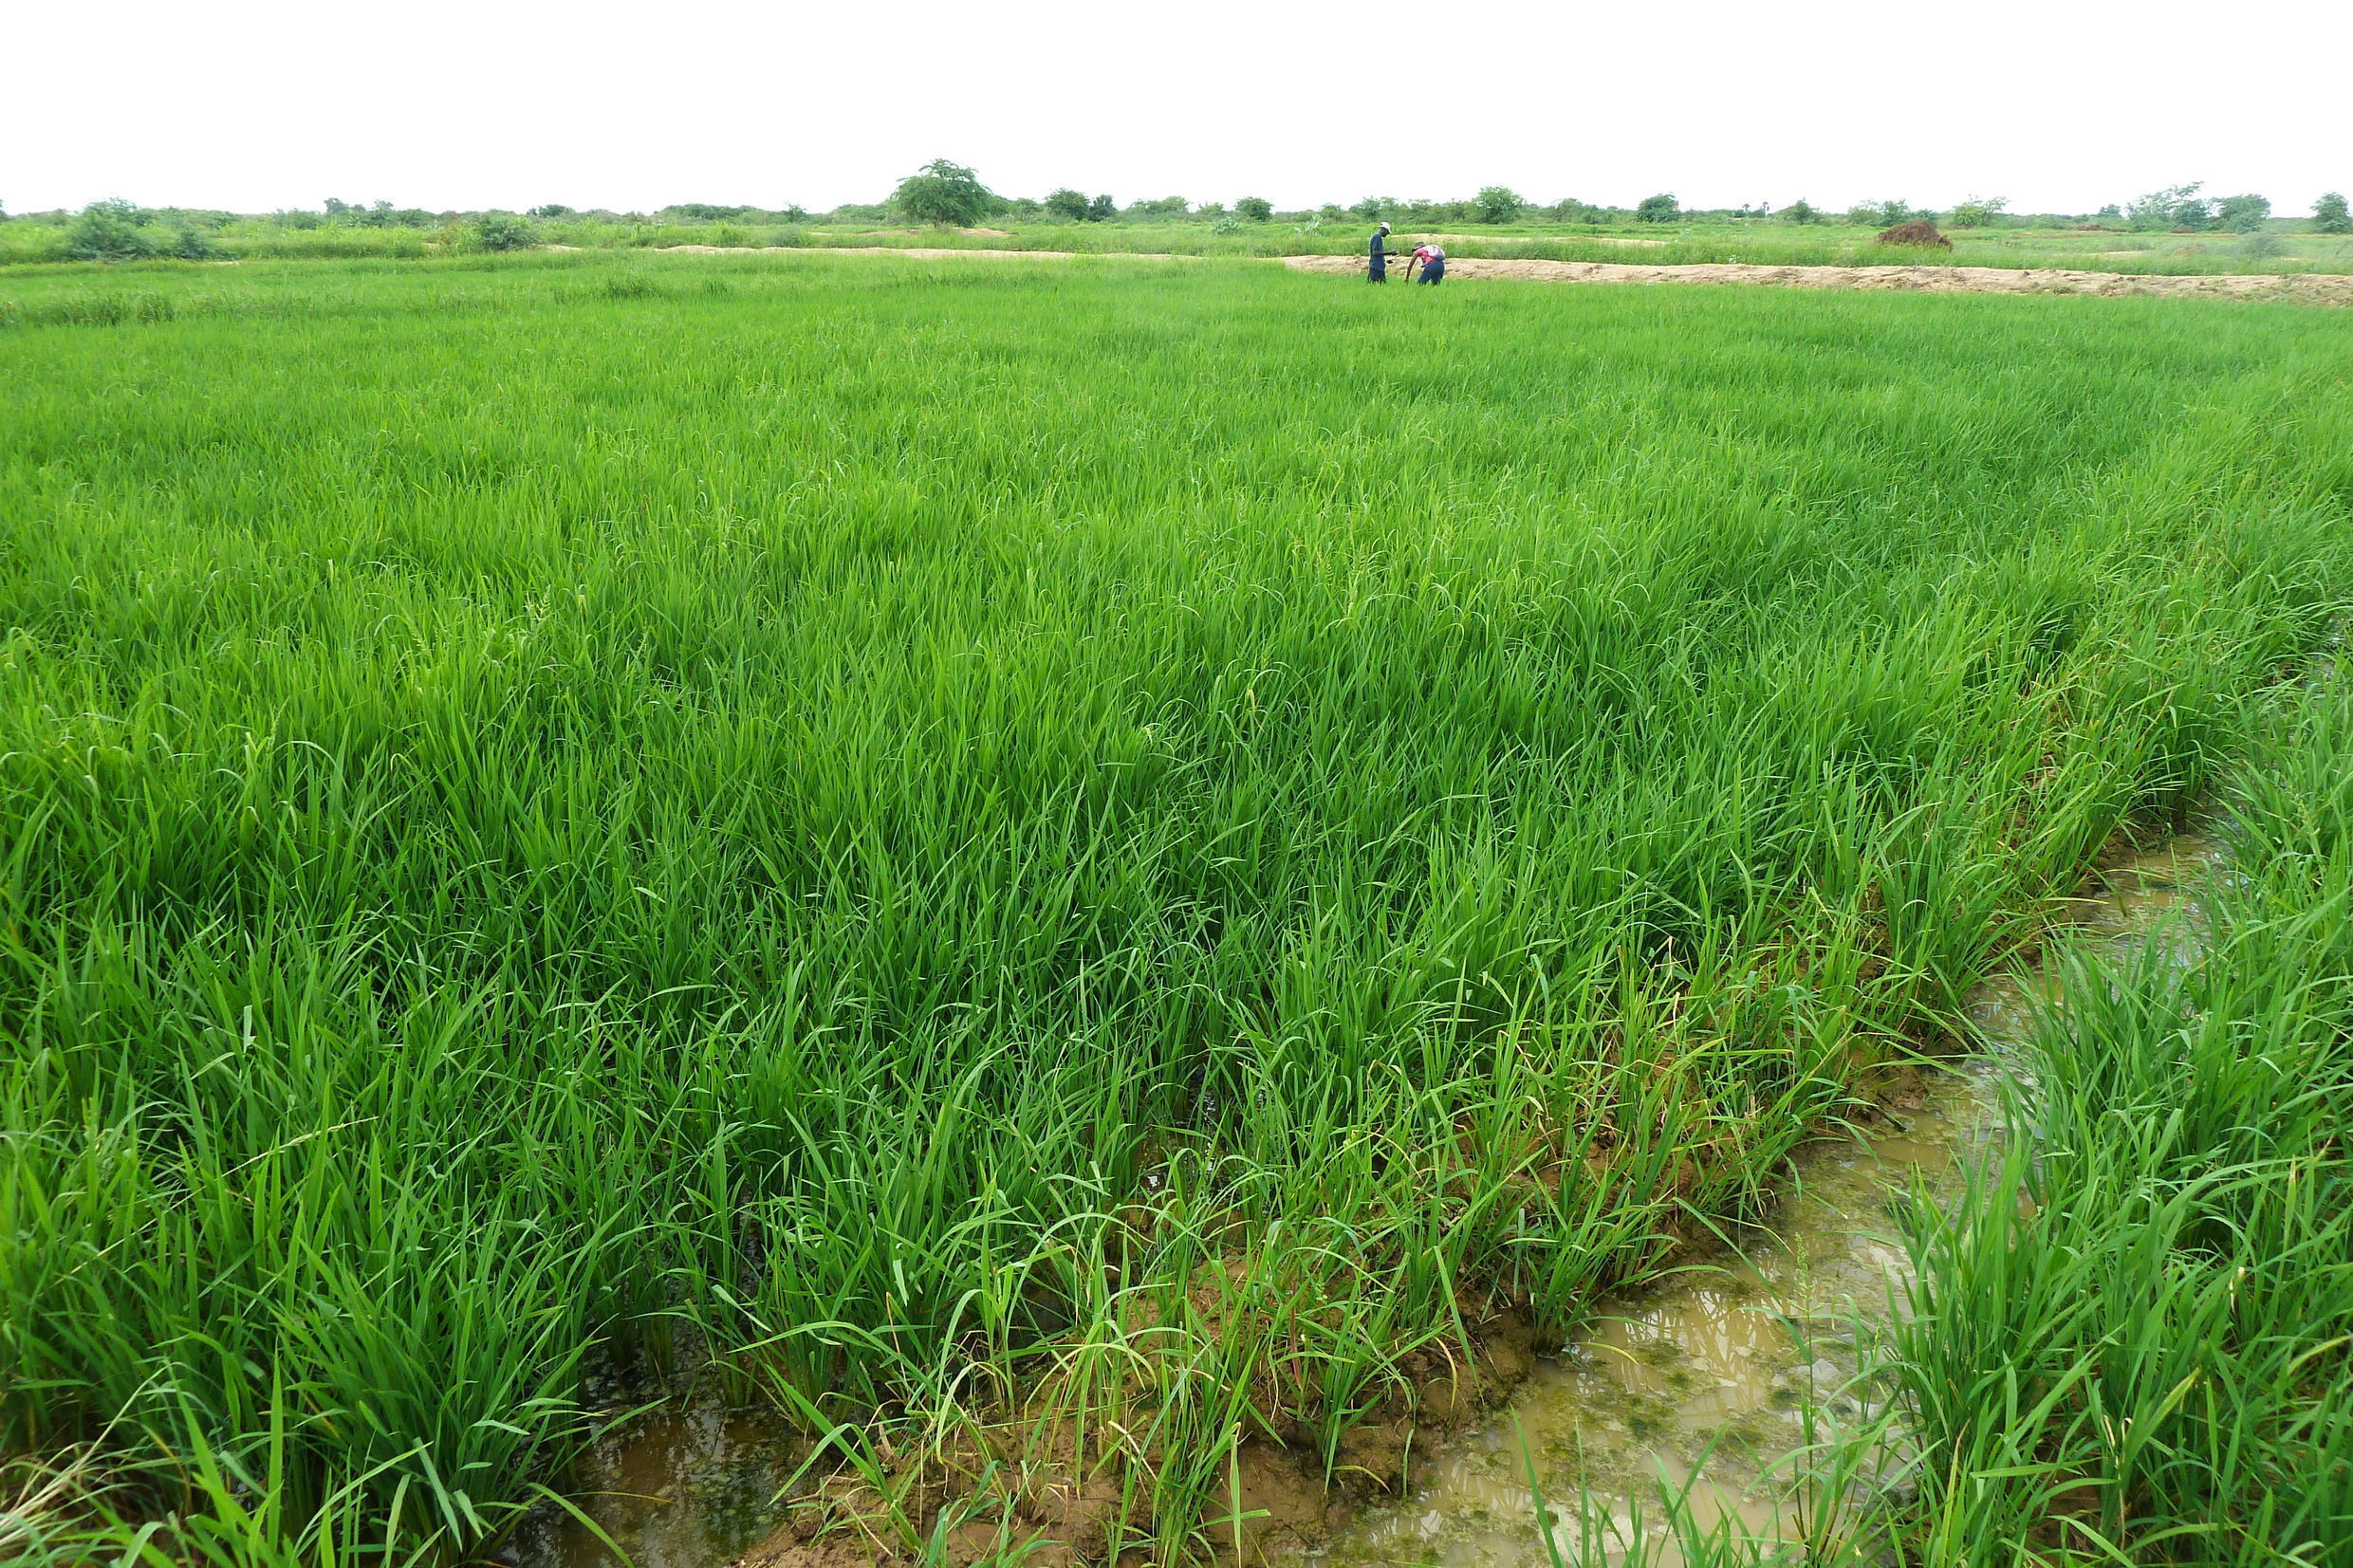 Irrigated rice field in the Senegal River Valley